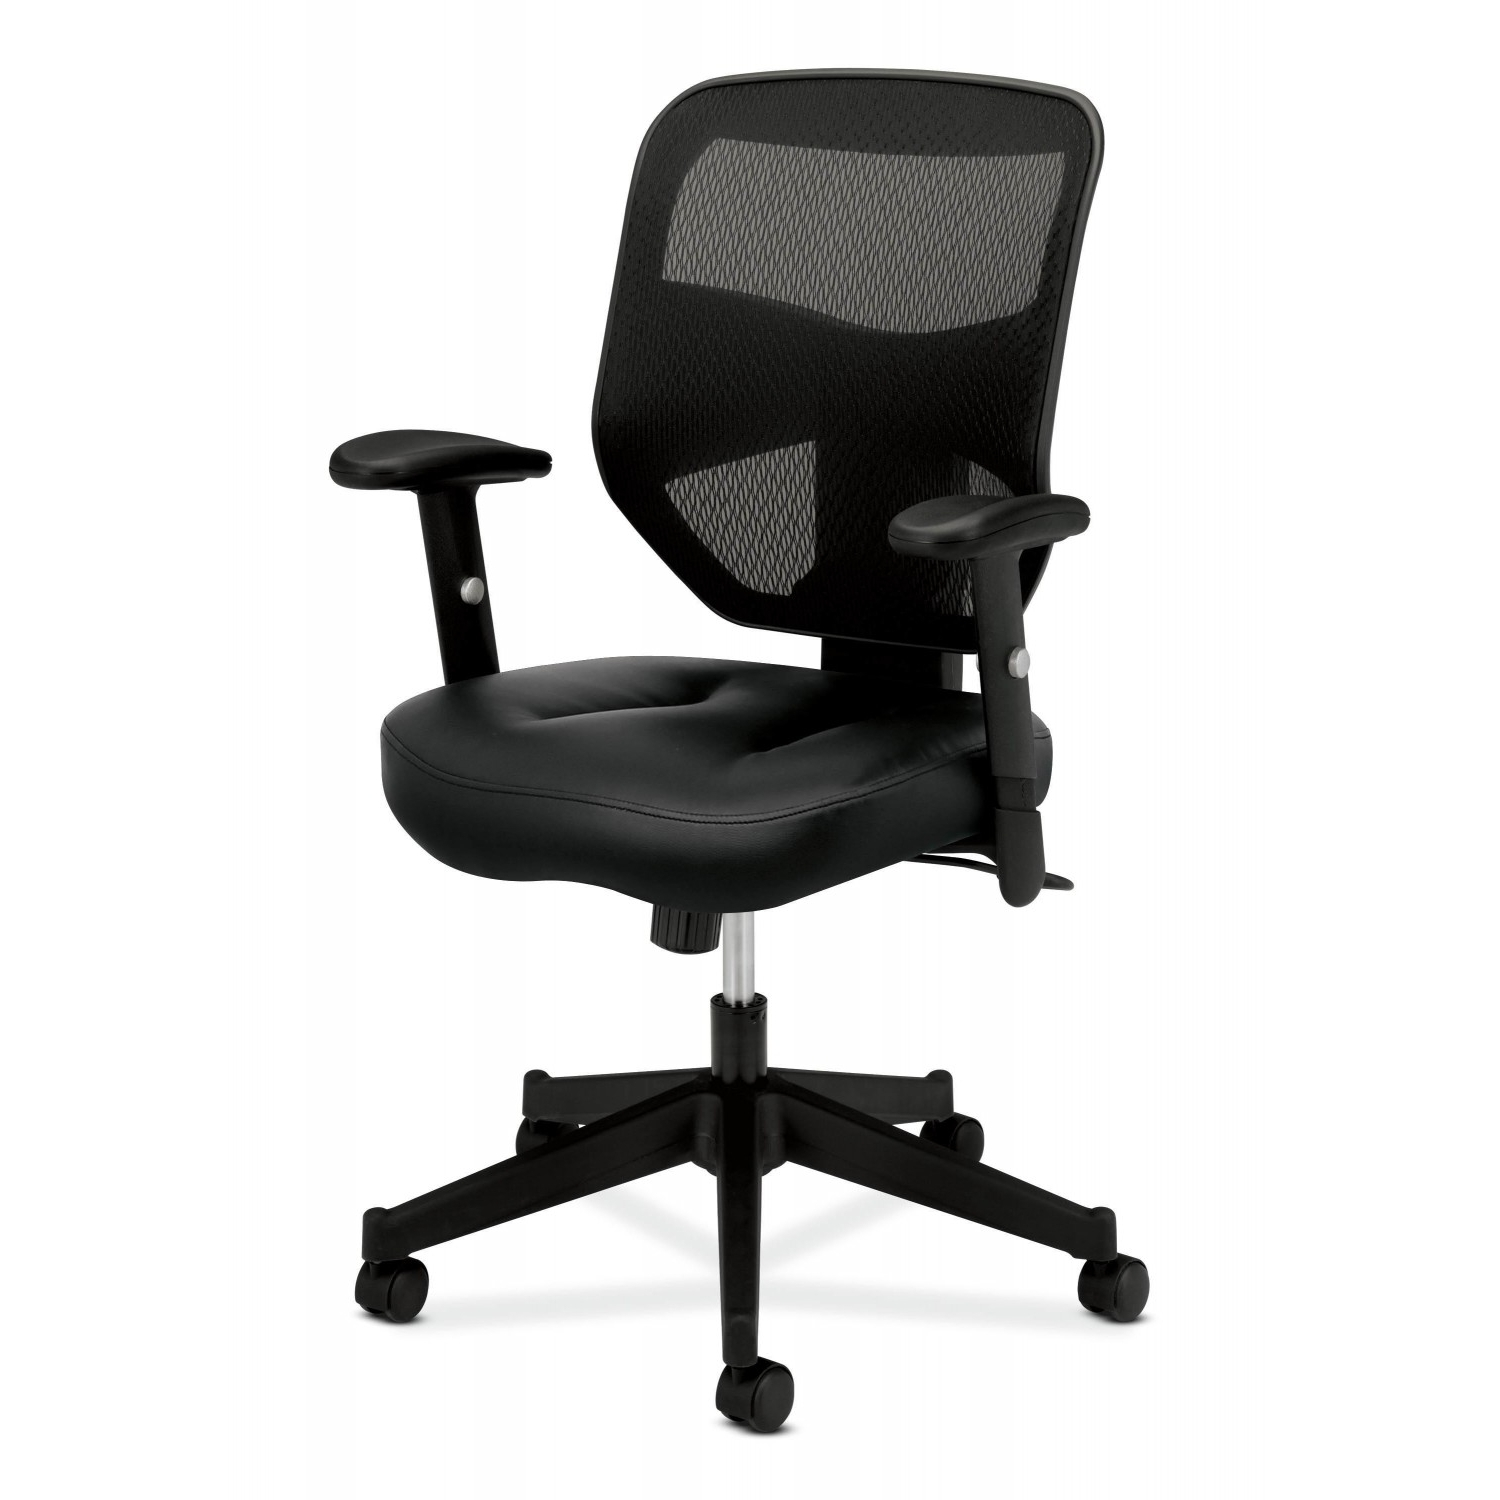 Hon Executive Office Chairs Pertaining To Recent Buy Hon Basyxhon Hvl531 Mesh High Back Leather For $ (View 14 of 20)